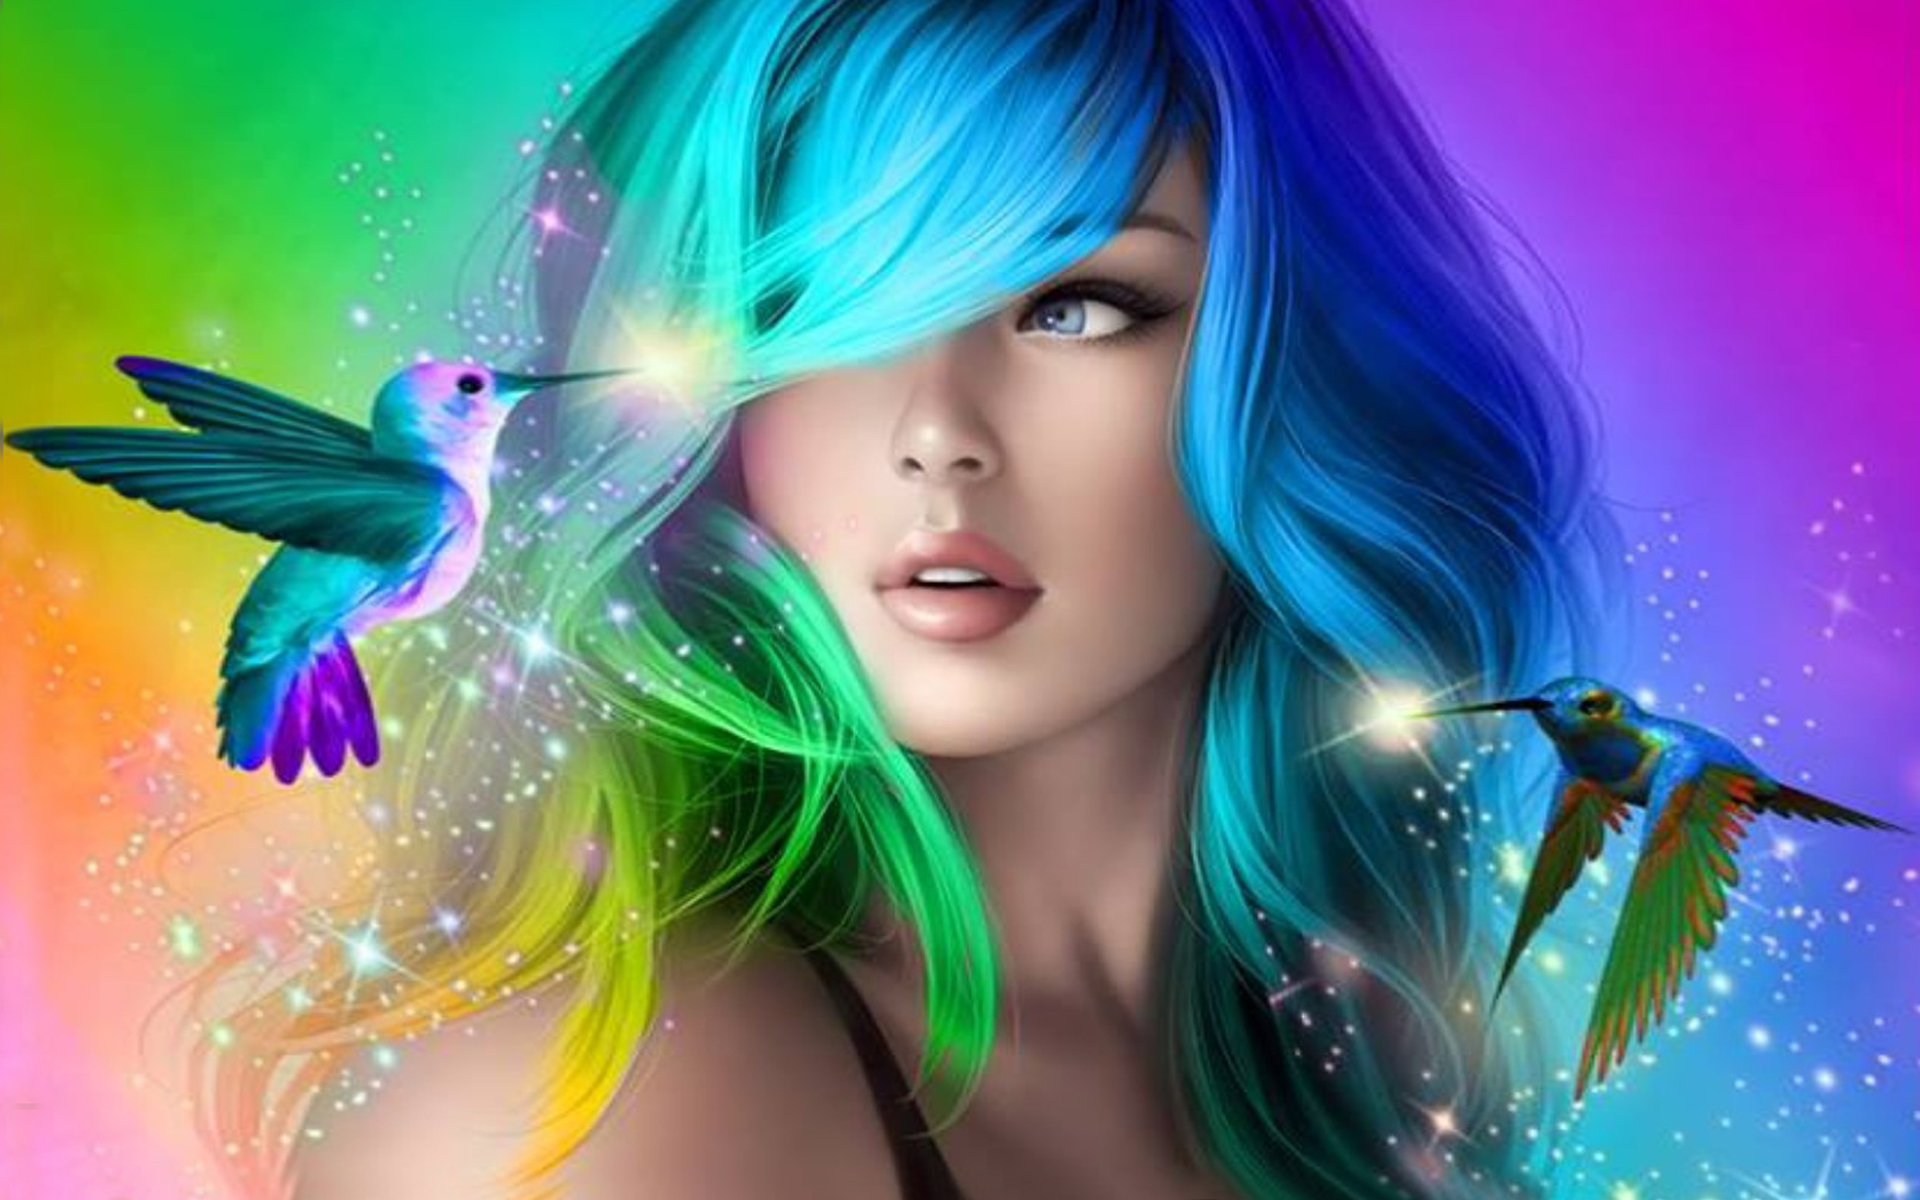 Beautiful Girl With Colorful Hair Desktop Wallpaper Hd For